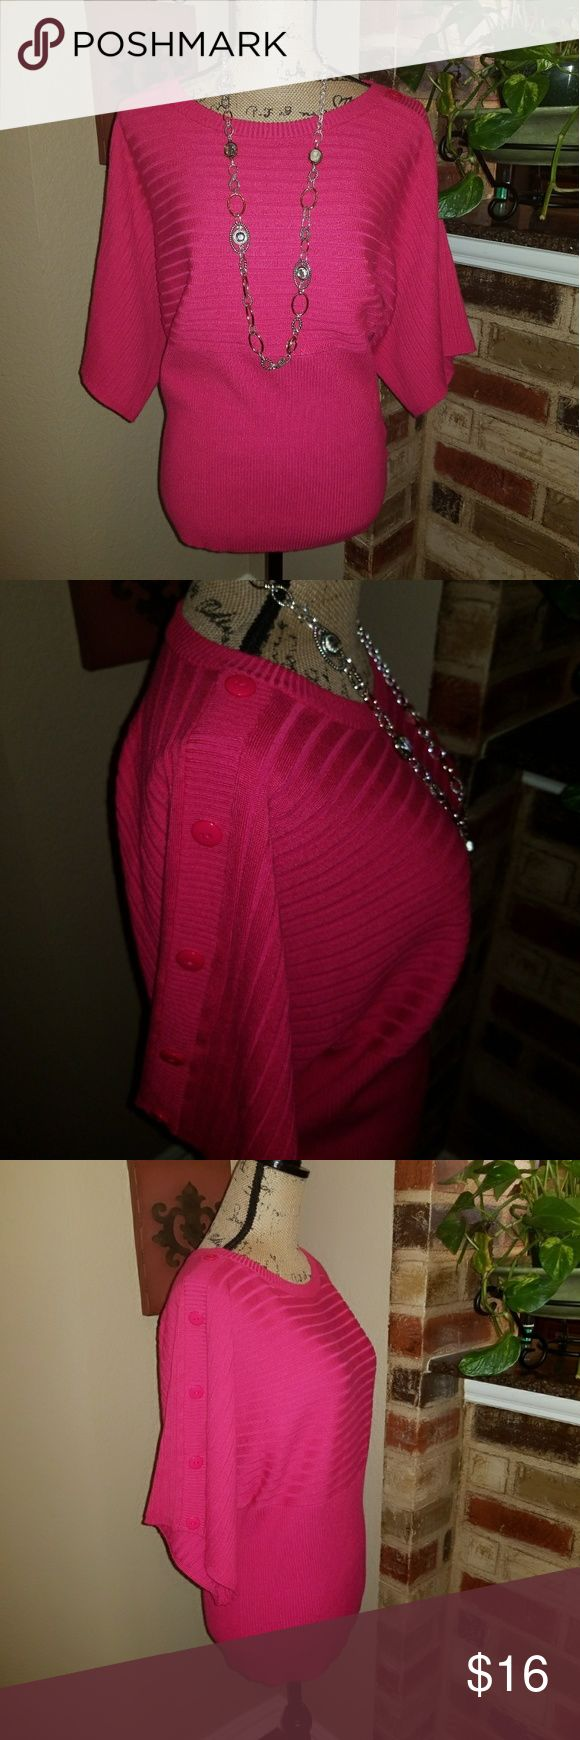 🎄Joseph A Hot Pink Top Darling Deep Hot pink Top that has an Empire waistline. Very slimming! Ribbed sweater and has Buttons down shoulder and sleeve. Excellent condition. Joseph A Tops